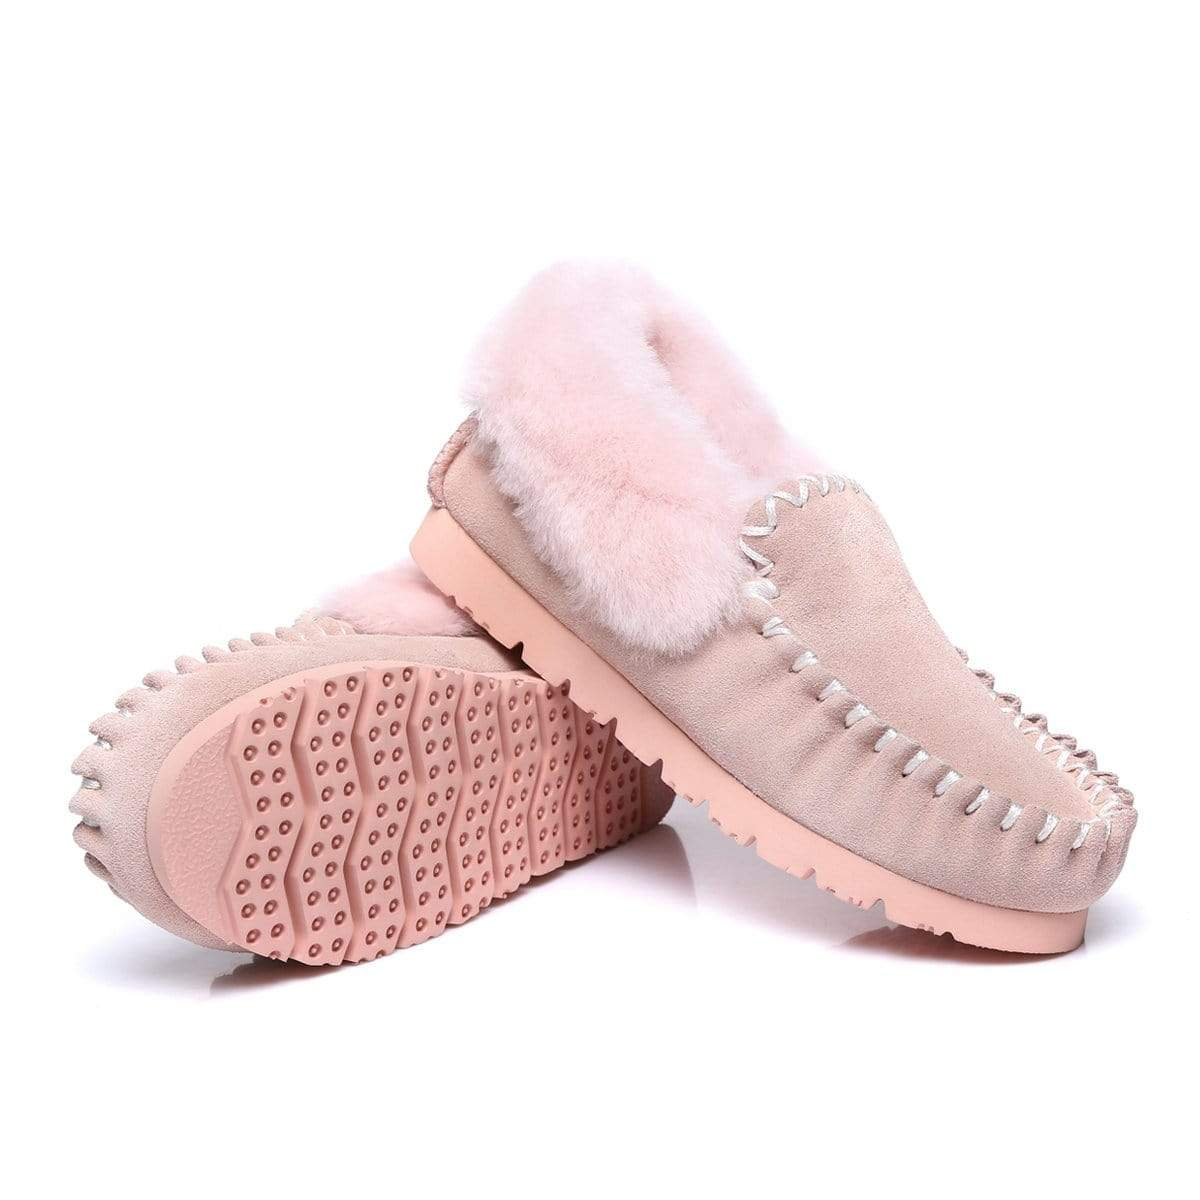 UGG Premium Traditional Moccasins